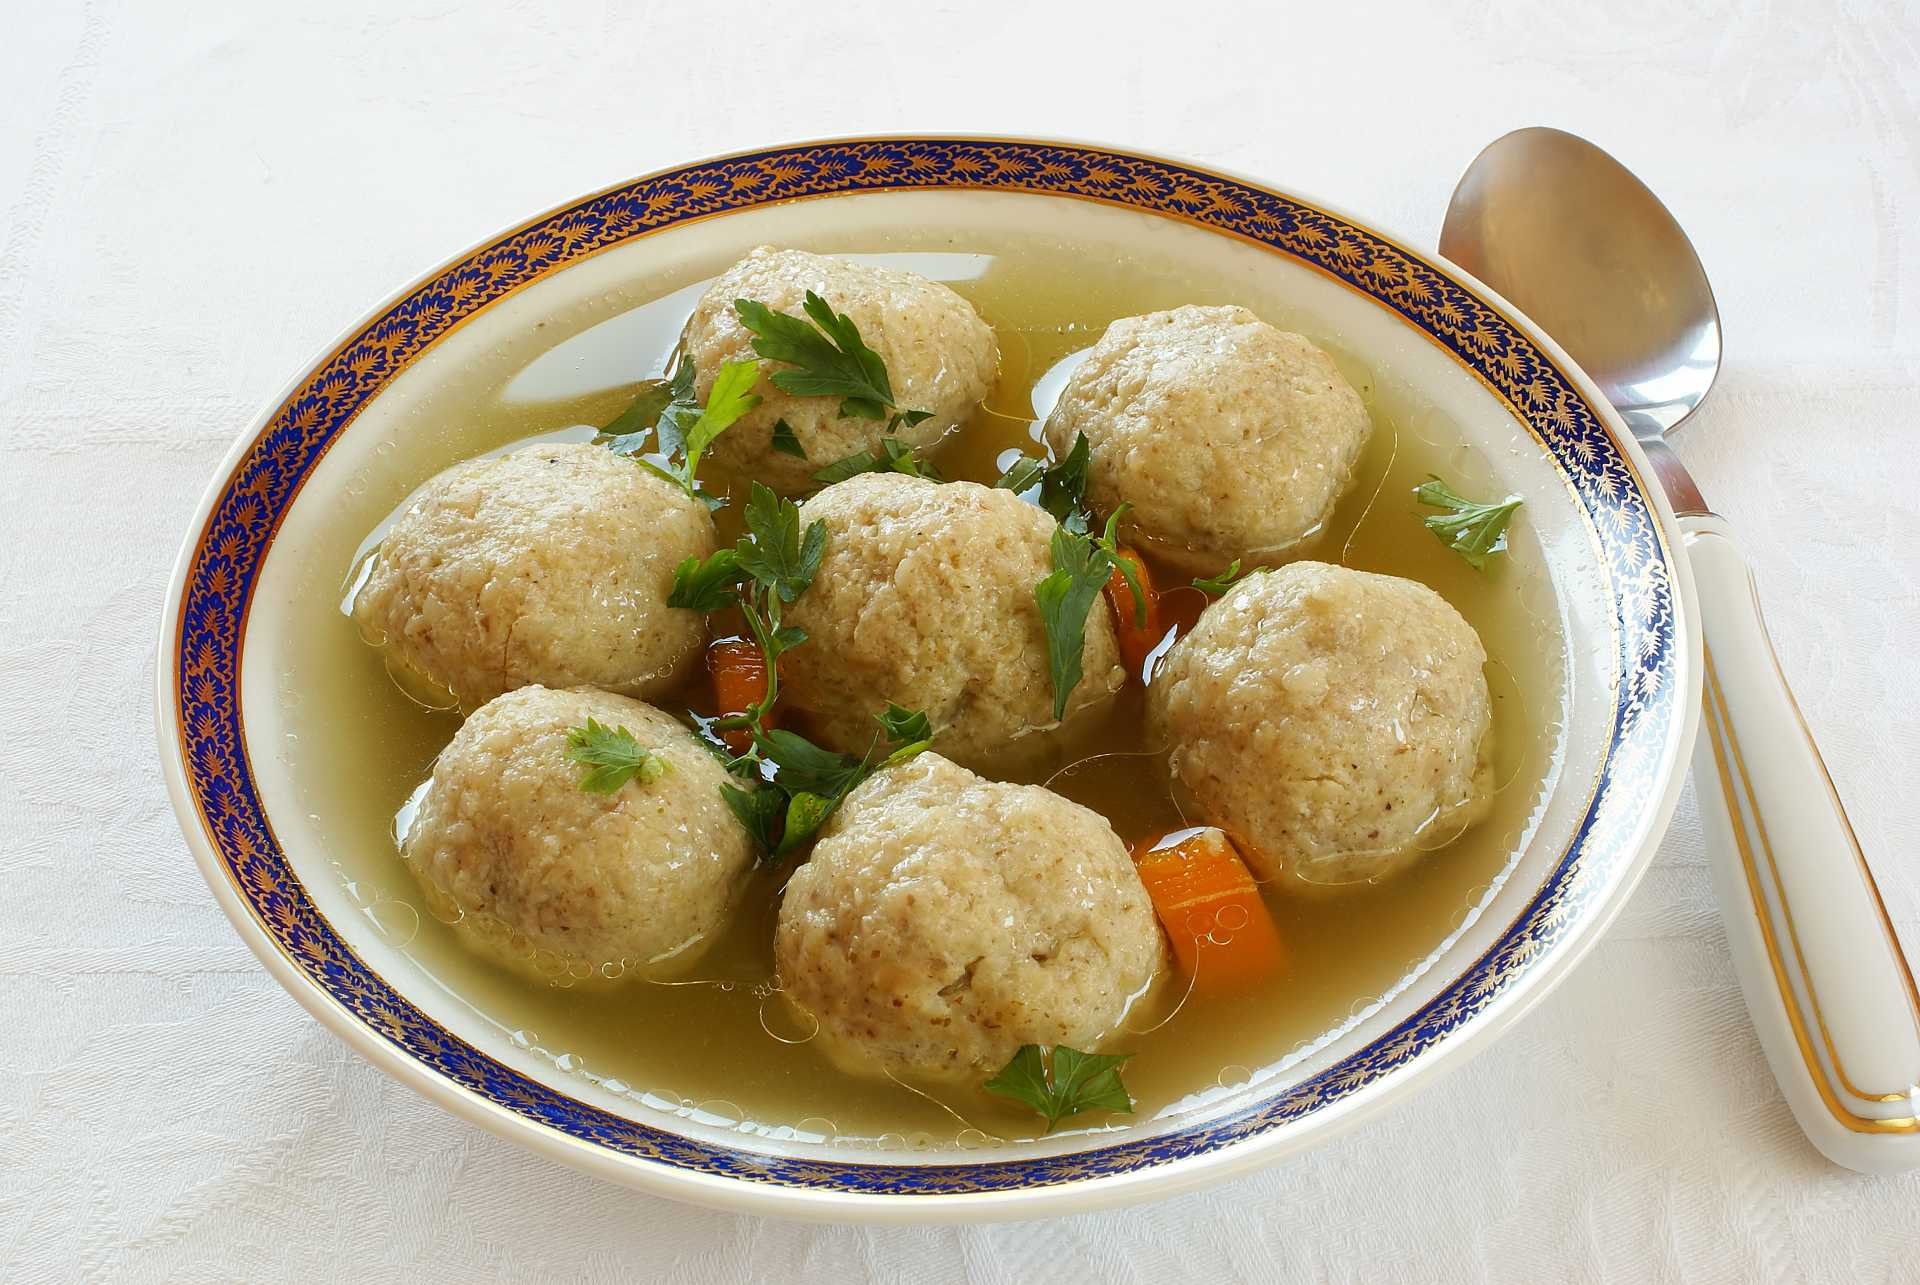 Healthy Ideas for Your Passover Dinner Image